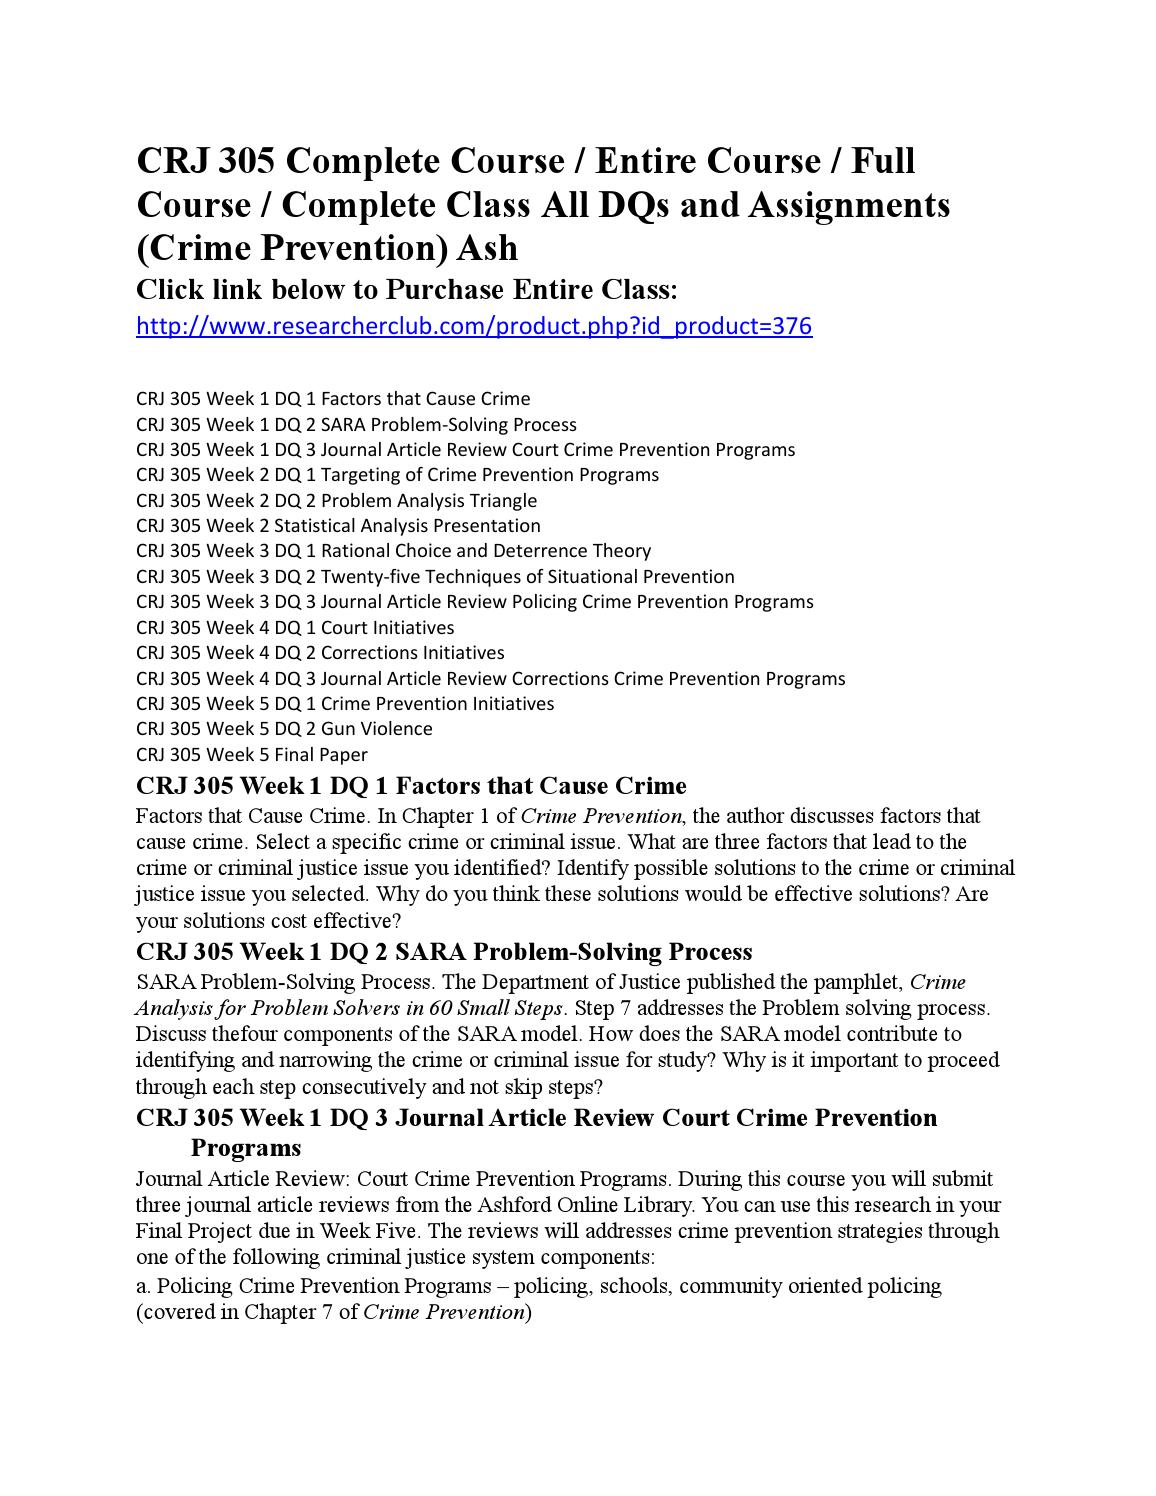 crj 305 entire course Crj 303 entire course crj crj 303 crj 303 entire course crj 303 entire course $4999 add to cart category: crj 303 tags: collection, complete class.